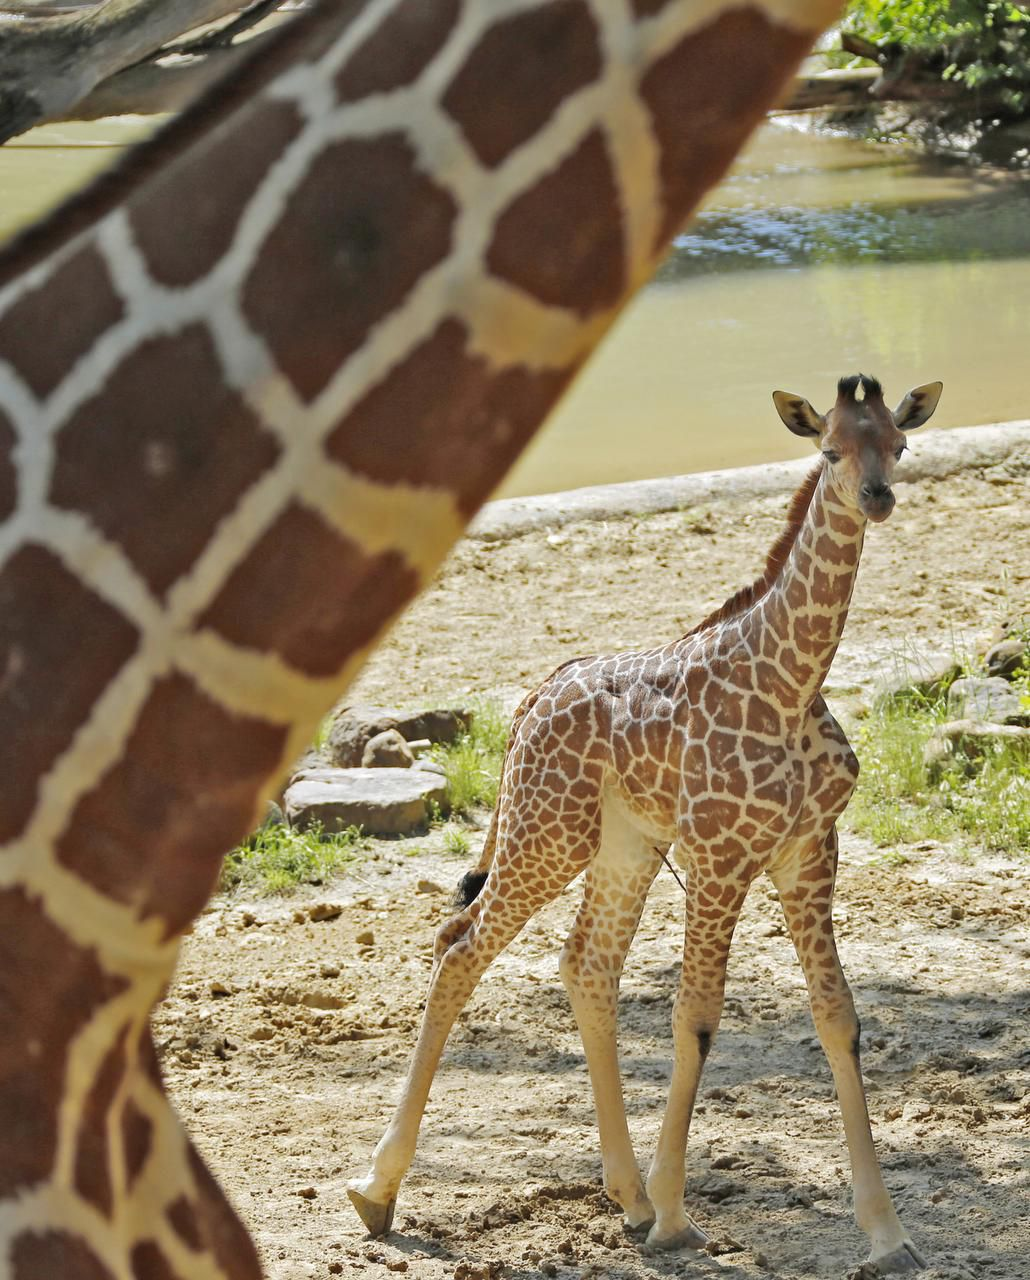 Kipenzi made her public debut at the Dallas Zoo on May 1.